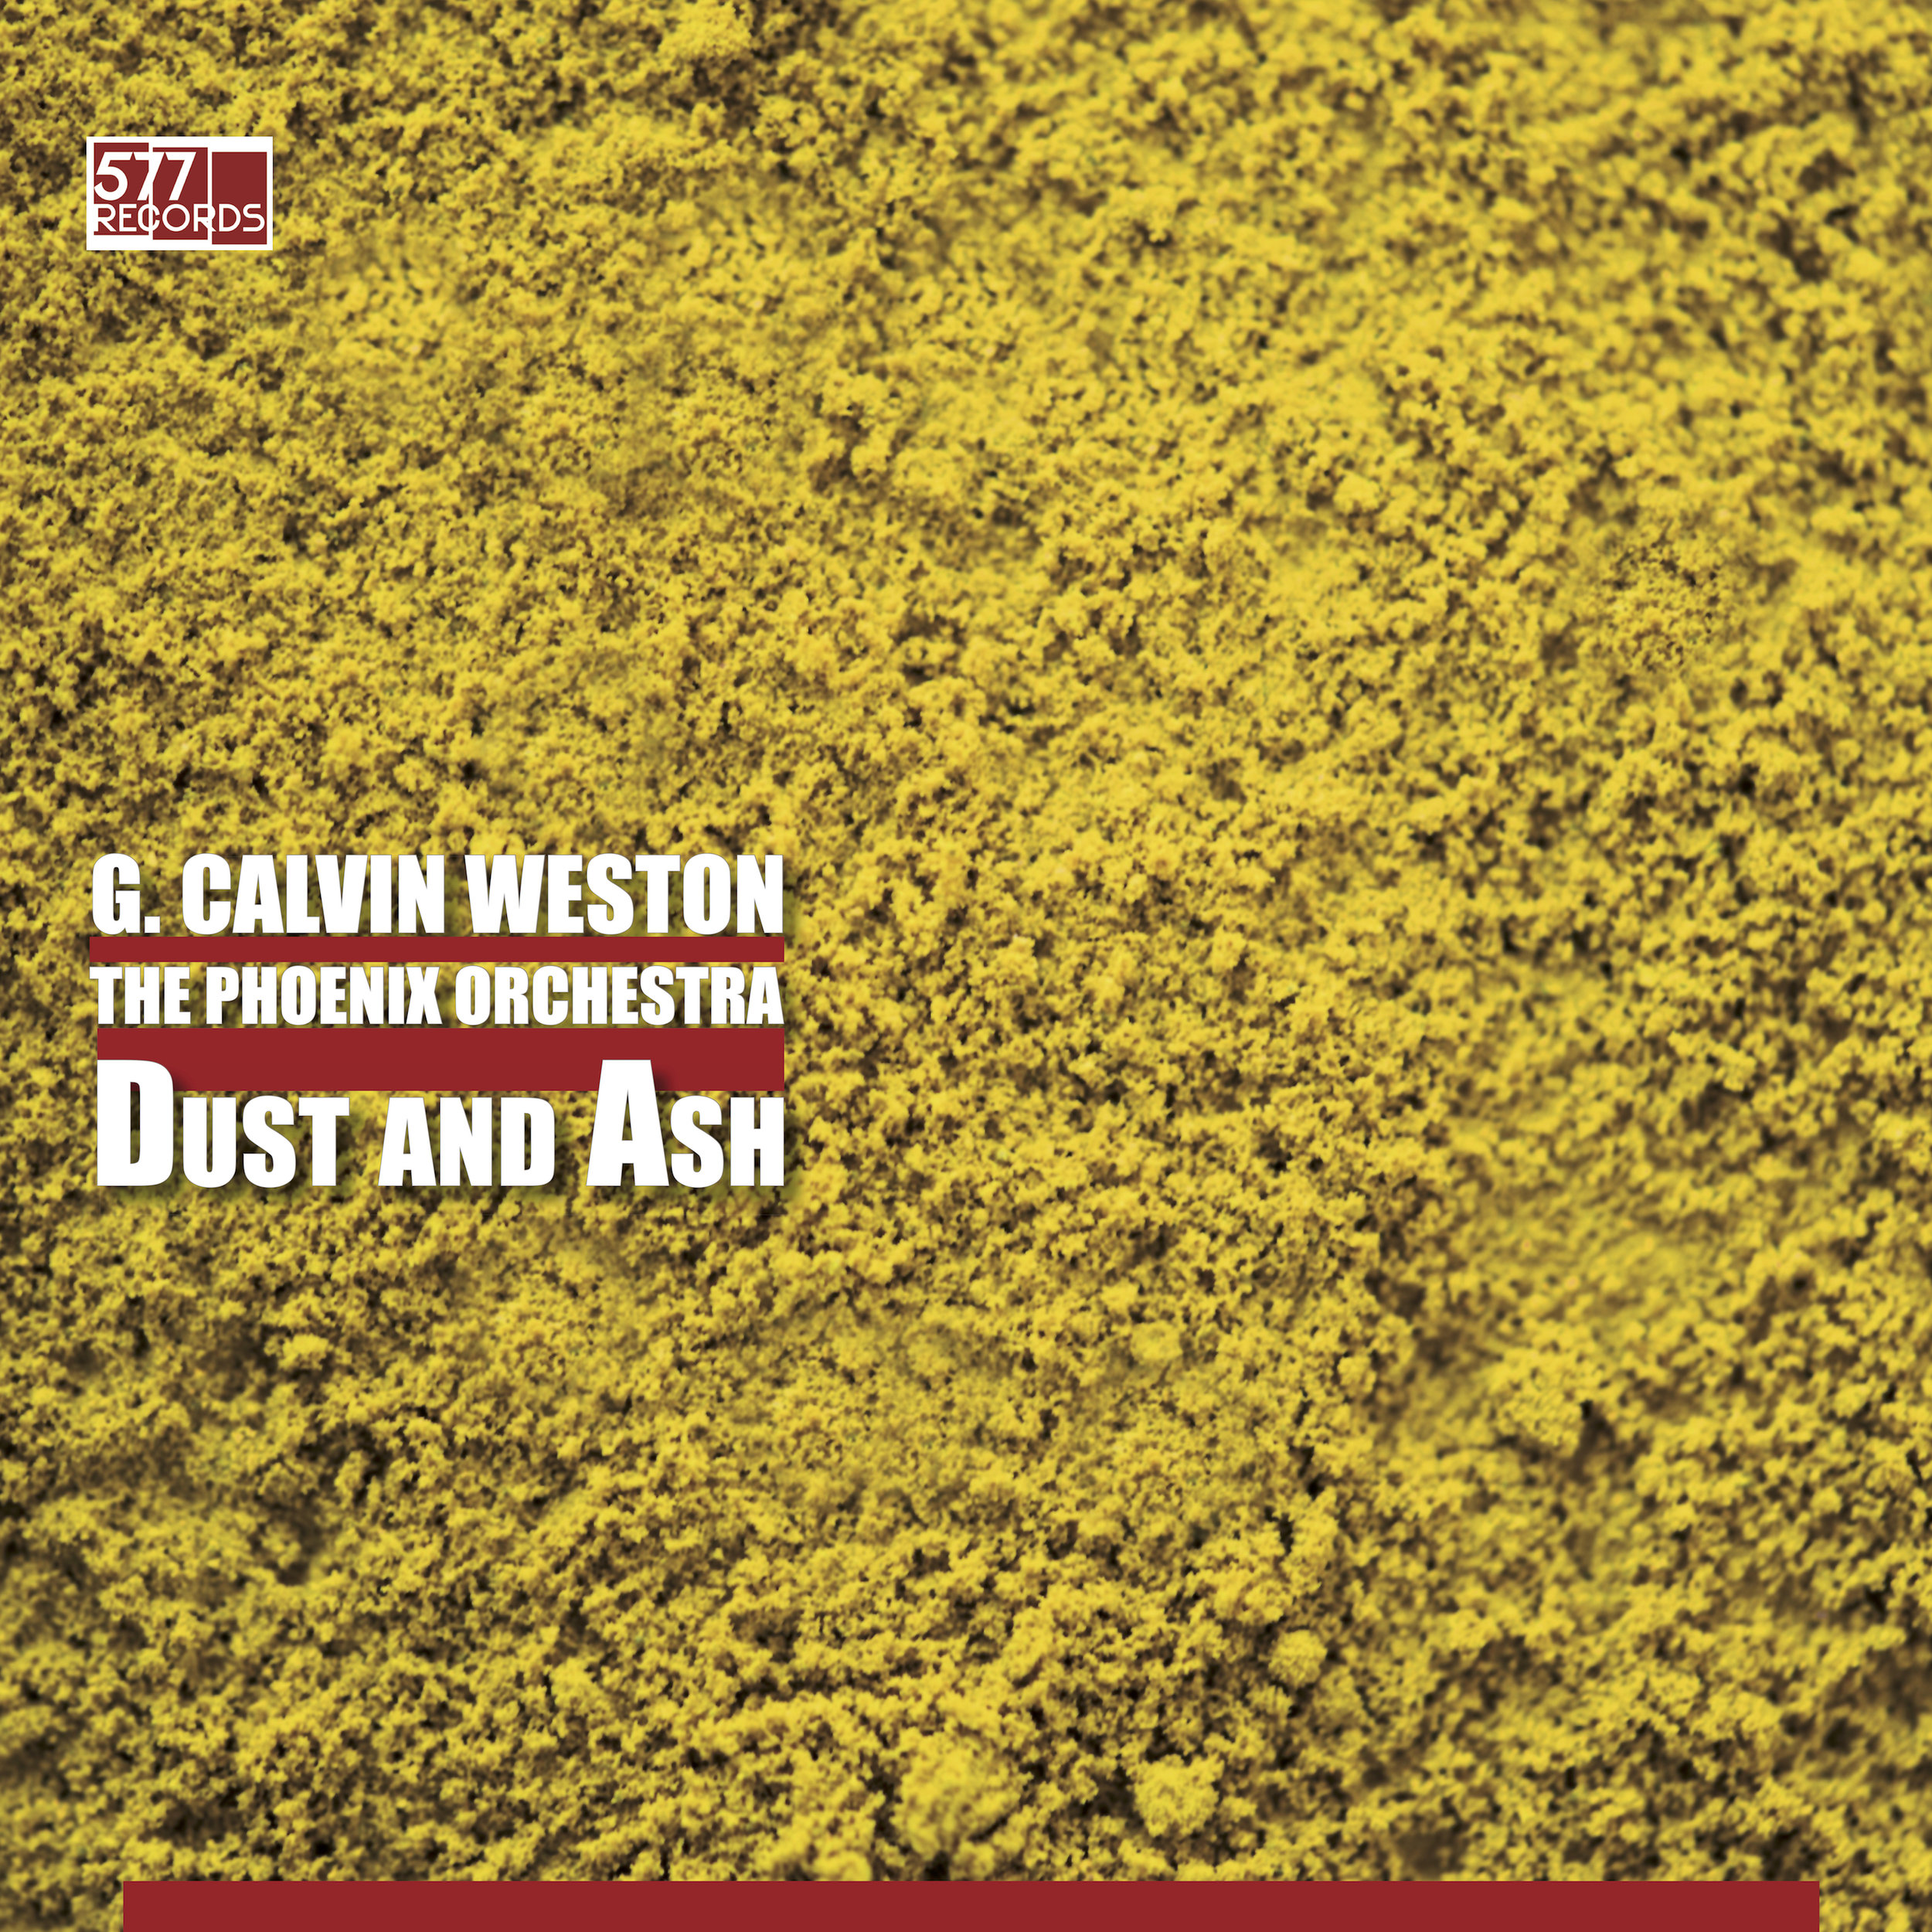 5826_GCW_DUST_AND_ASH_COVER.jpg